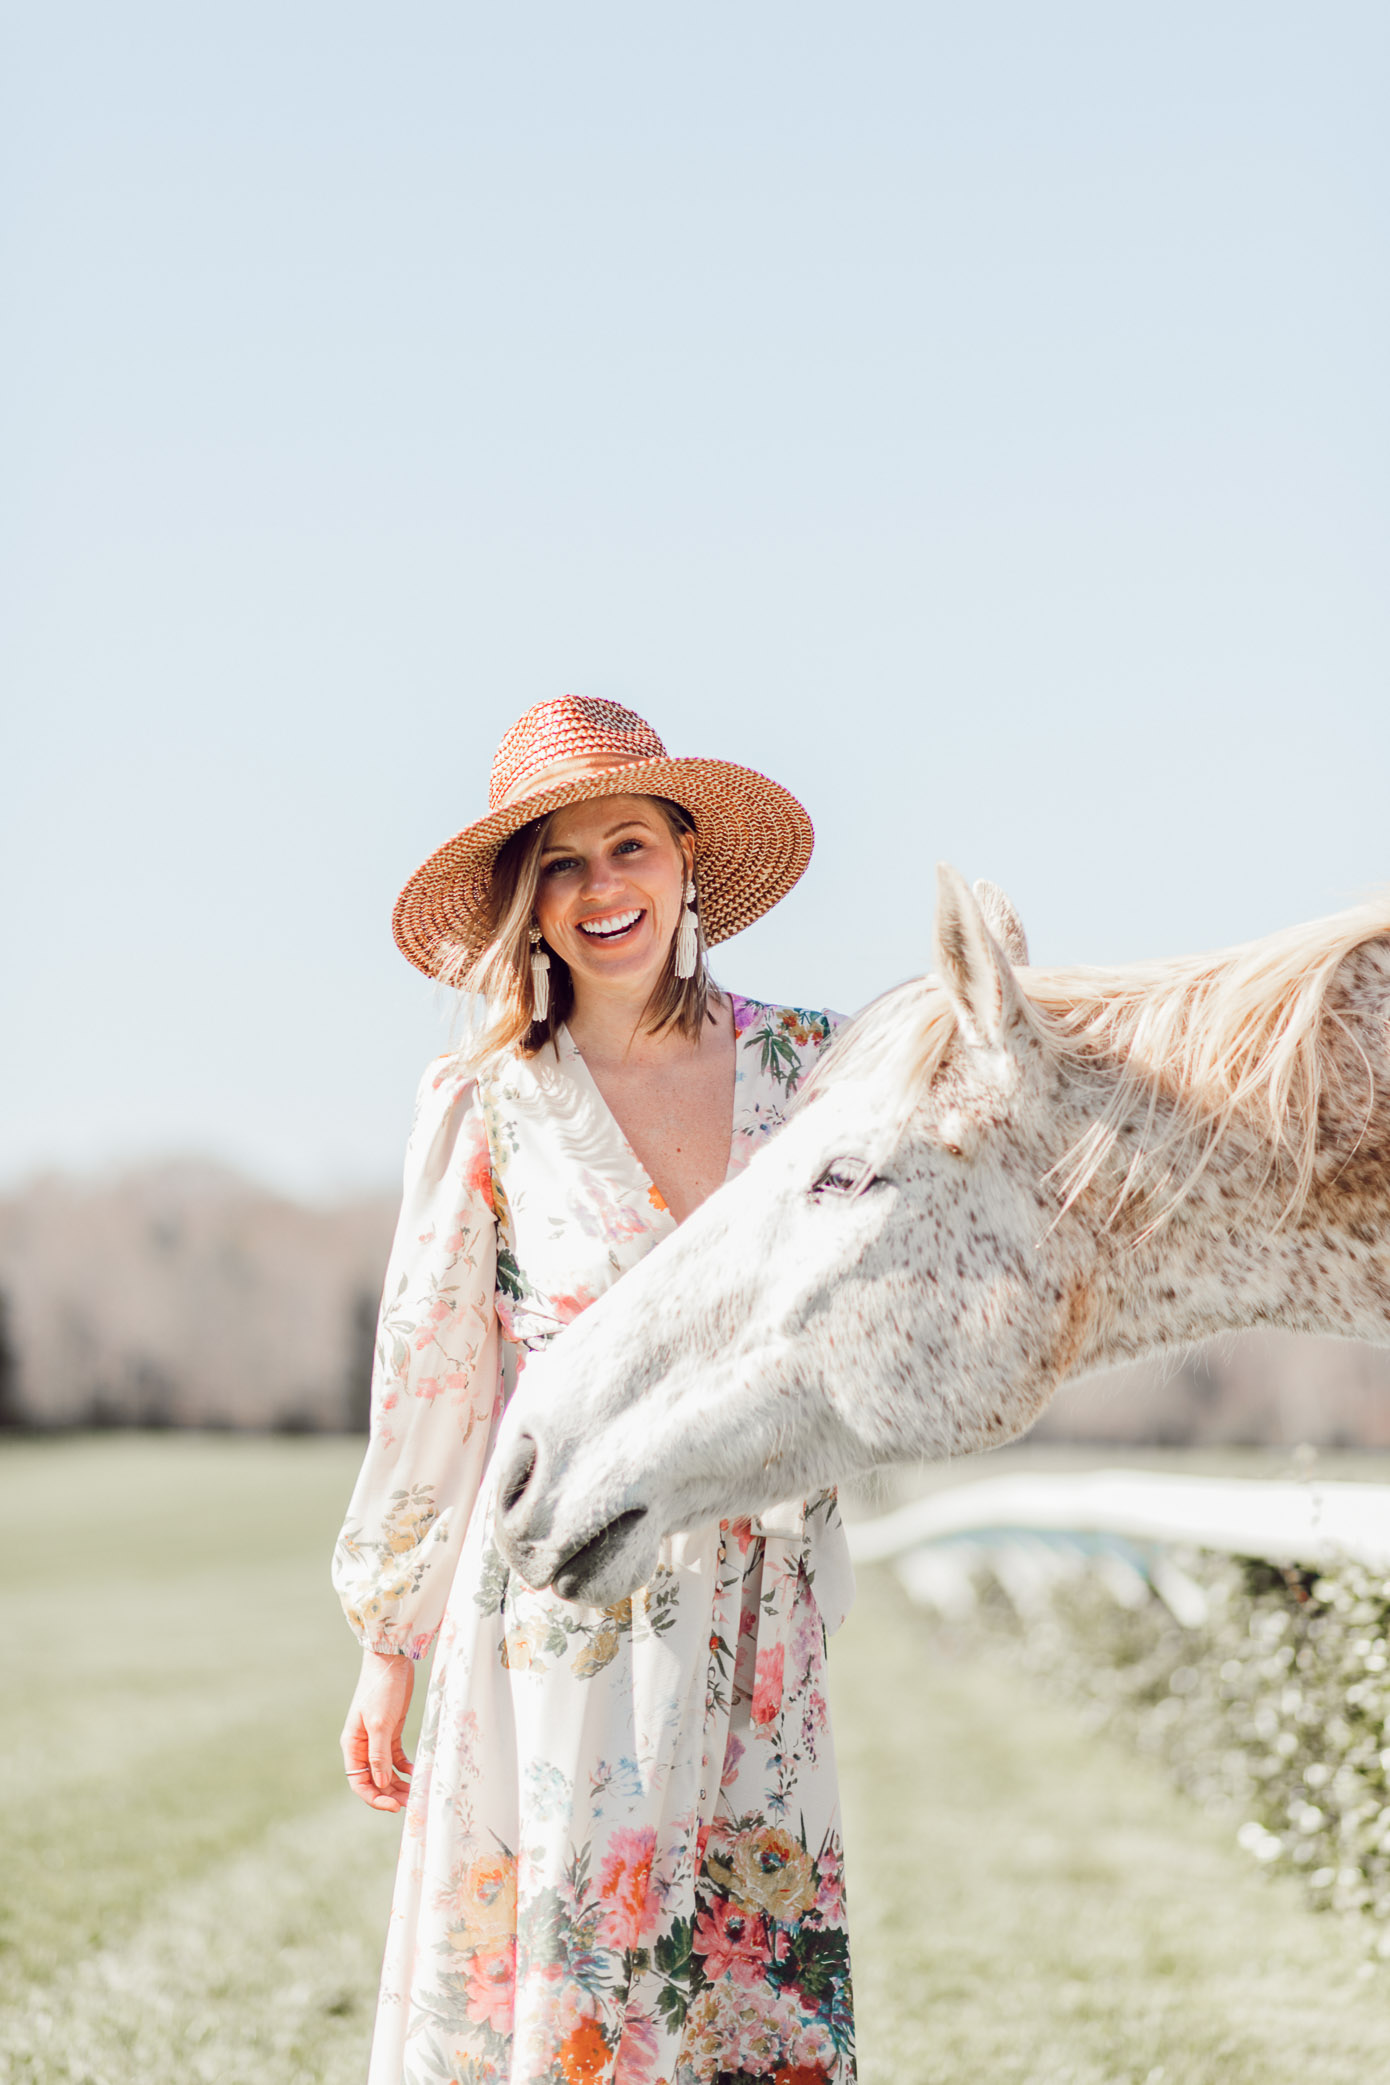 Kentucky Derby outfit ideas 2019 + the best floral dresses of the season to shop now | Louella Reese